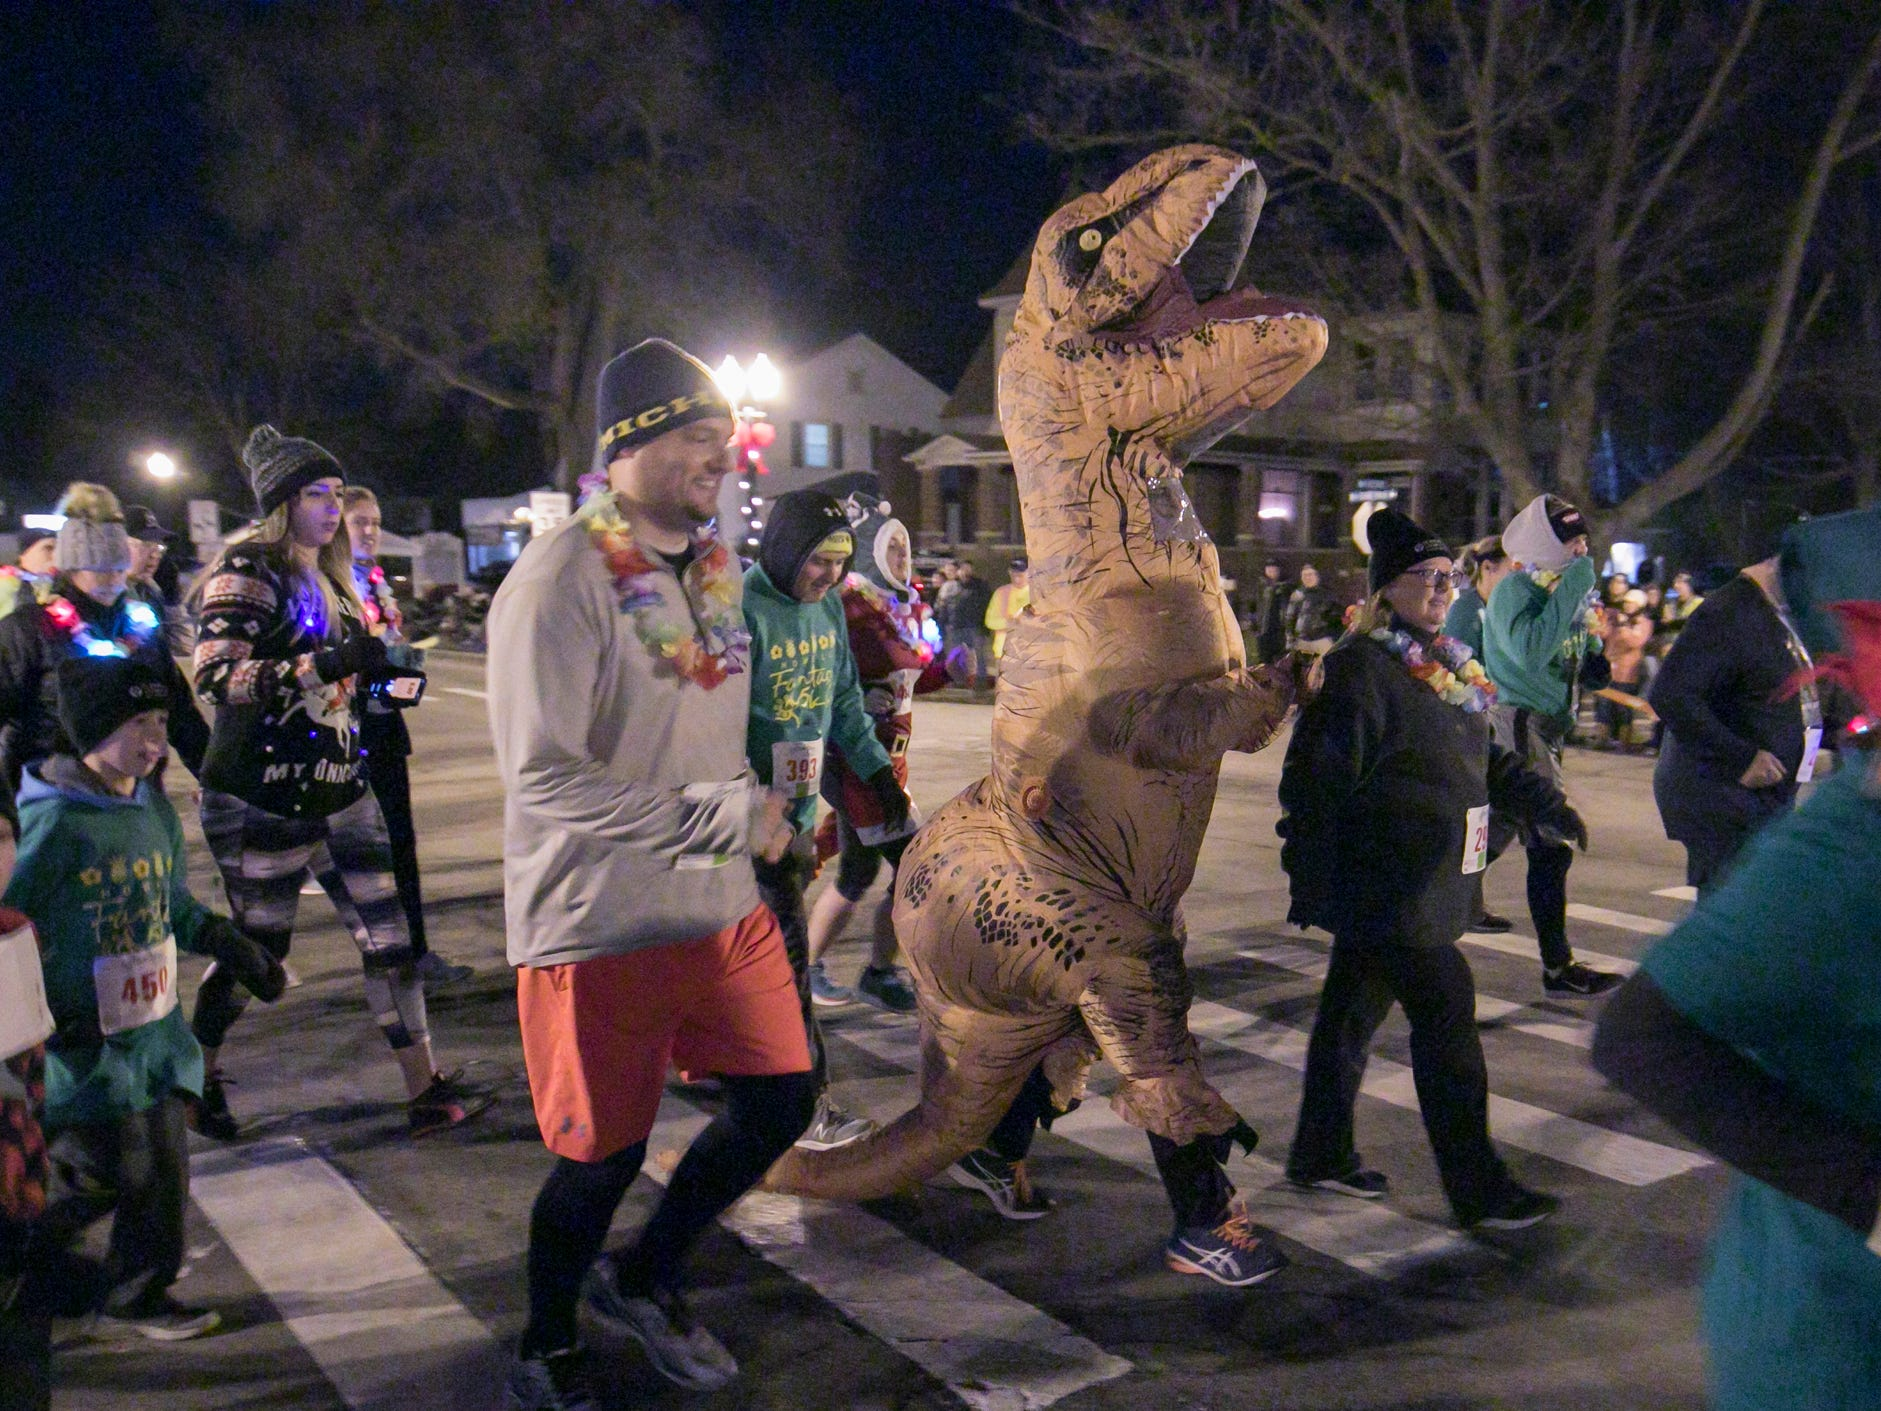 Donning lights or a costume is the norm in running the Fantasy 5k, held Friday, Nov. 23, 2018.